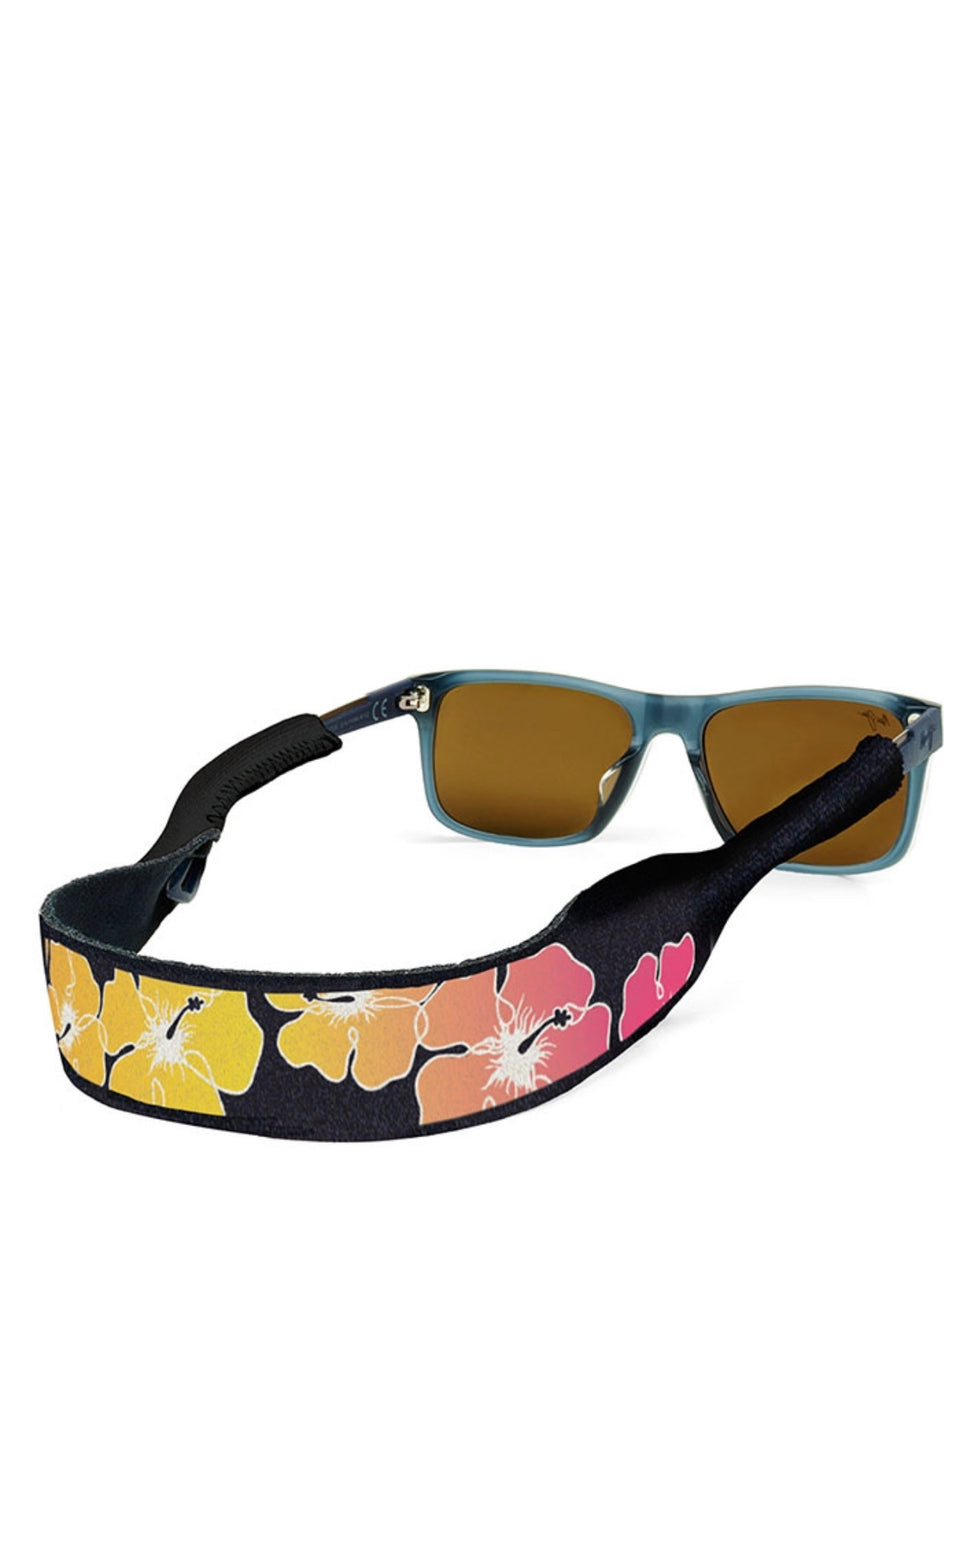 Croakies XL - Print